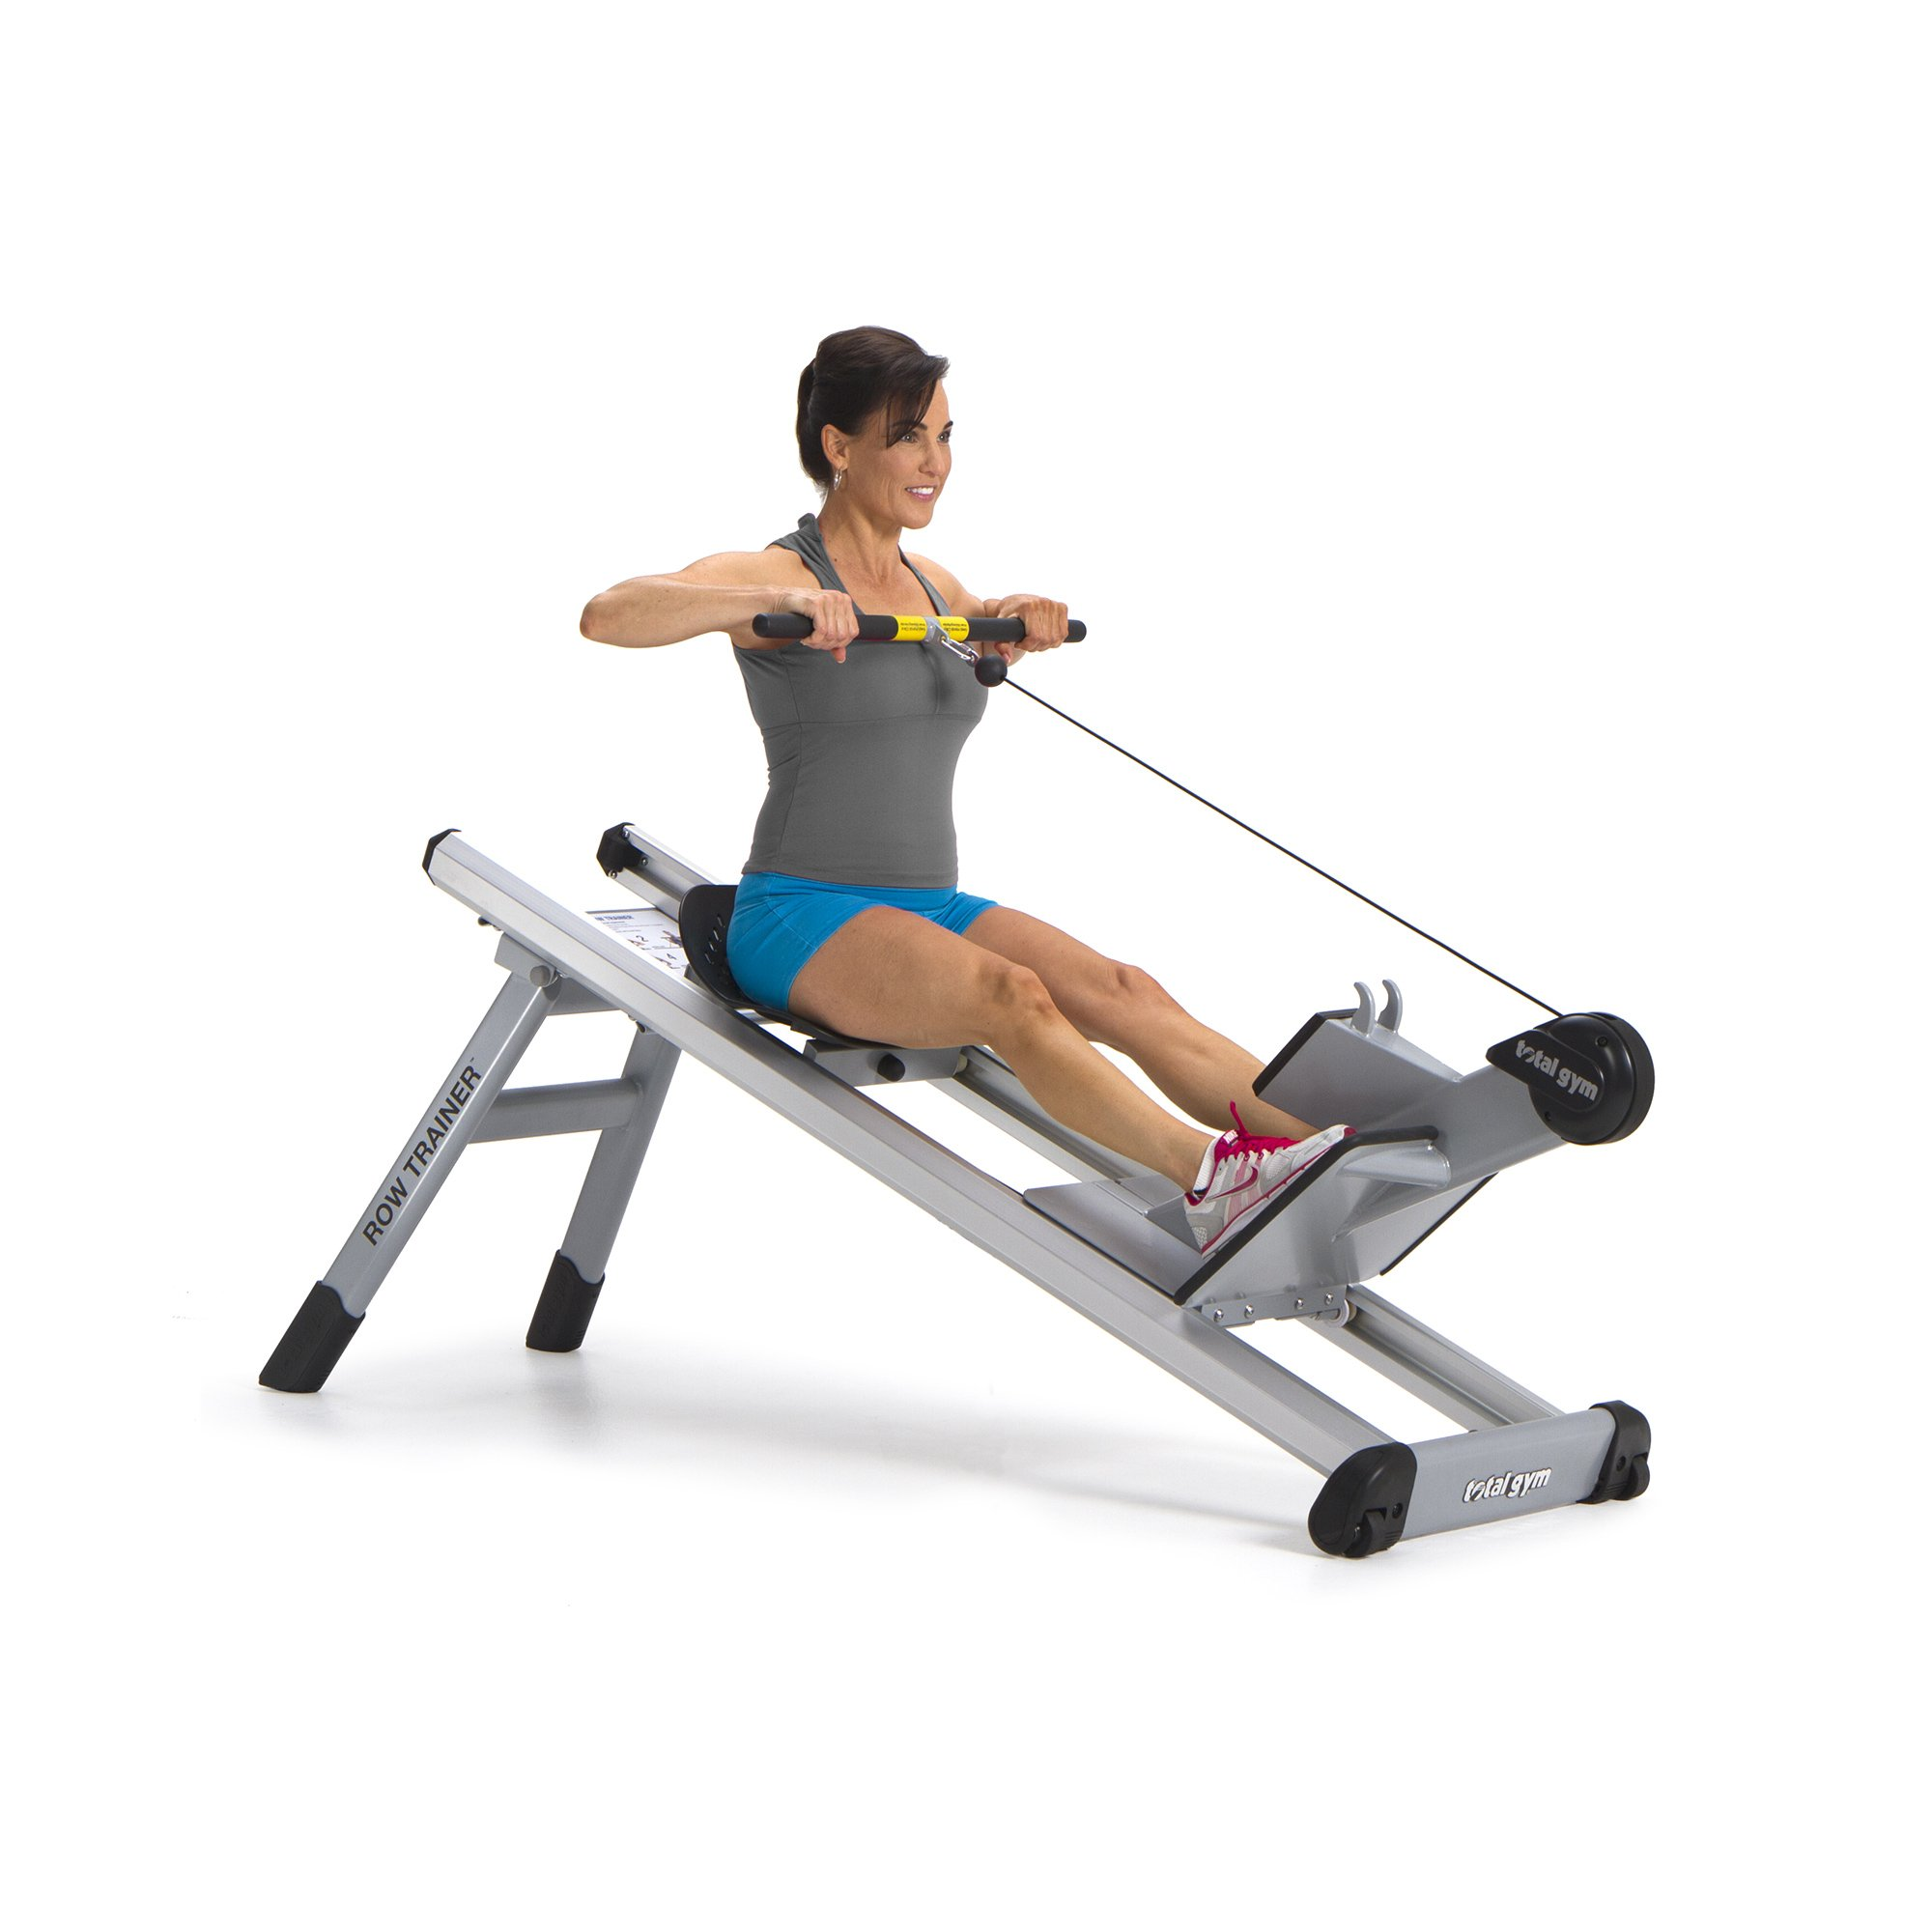 Total Gym Fitness Elevate Circuit Row Trainer Full Body Workout Rowing Machine